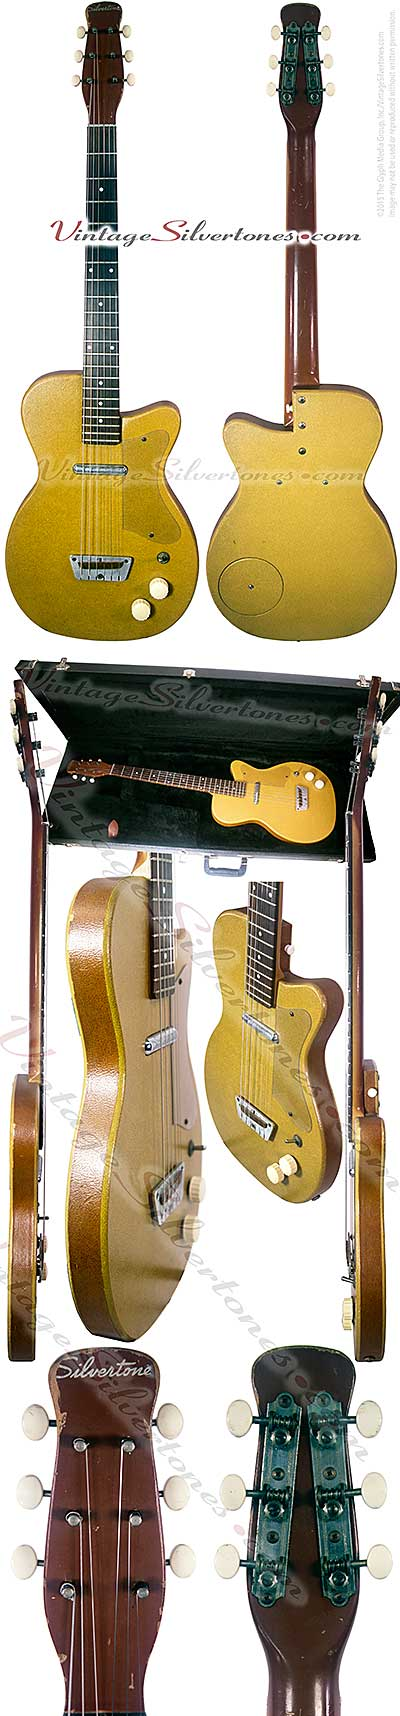 Silvertone 1357 made by Danelectro U1, one pickup, electric guitar, semi-hollow body, ginger vinyl finish, tan vinyl binding, masonite body, lipstick pickup, made in 1956